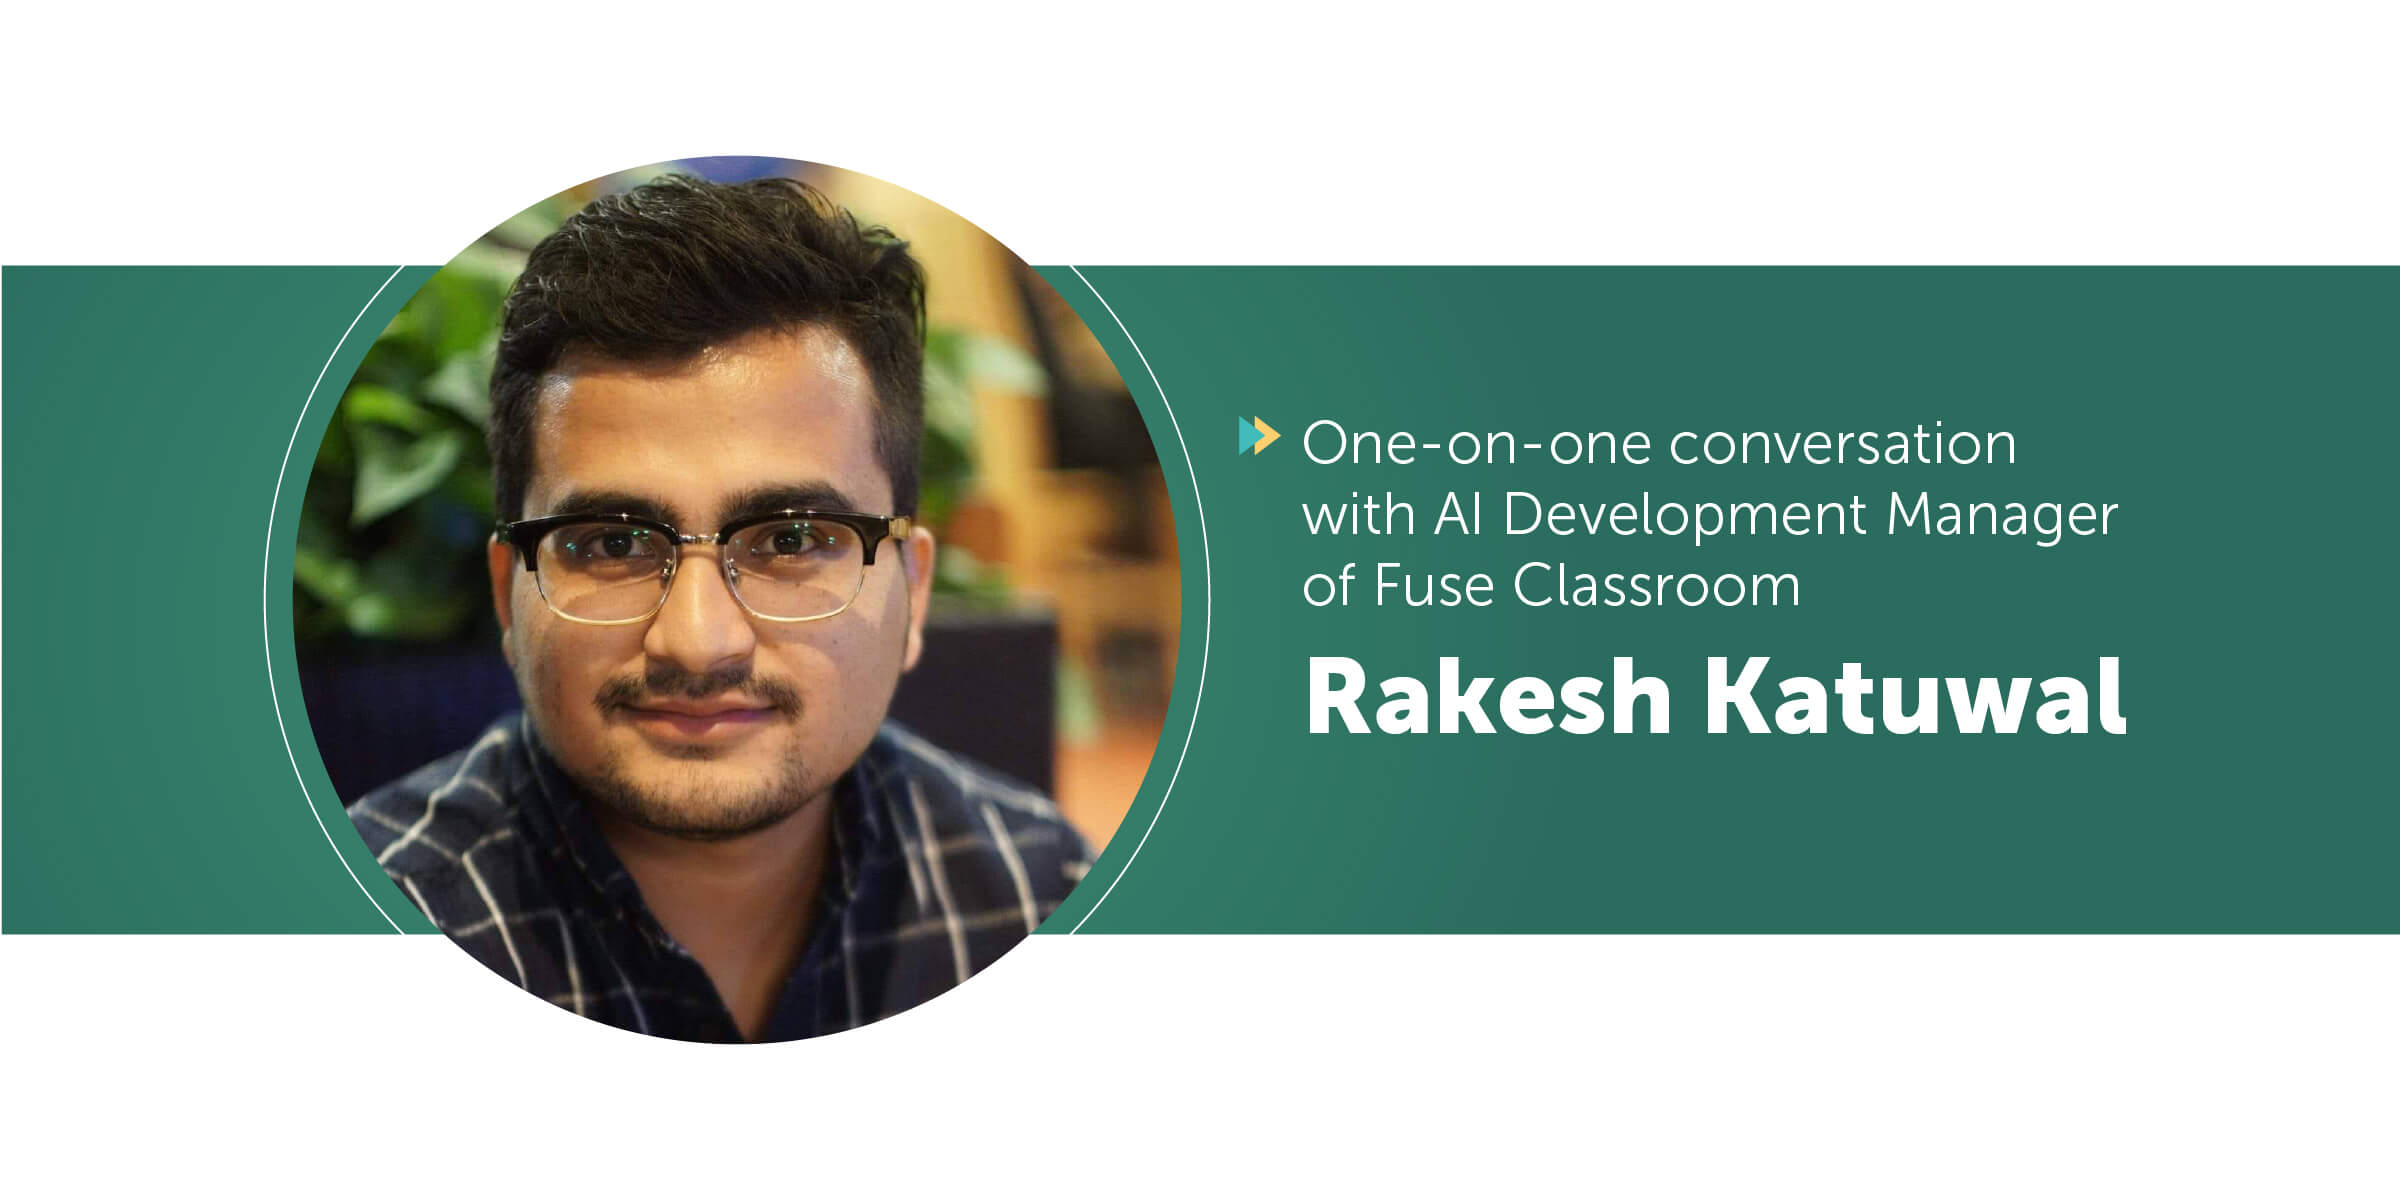 A banner image of Fuse Classroom's Manager of AI Development, Mr. Rakesh Katuwal.